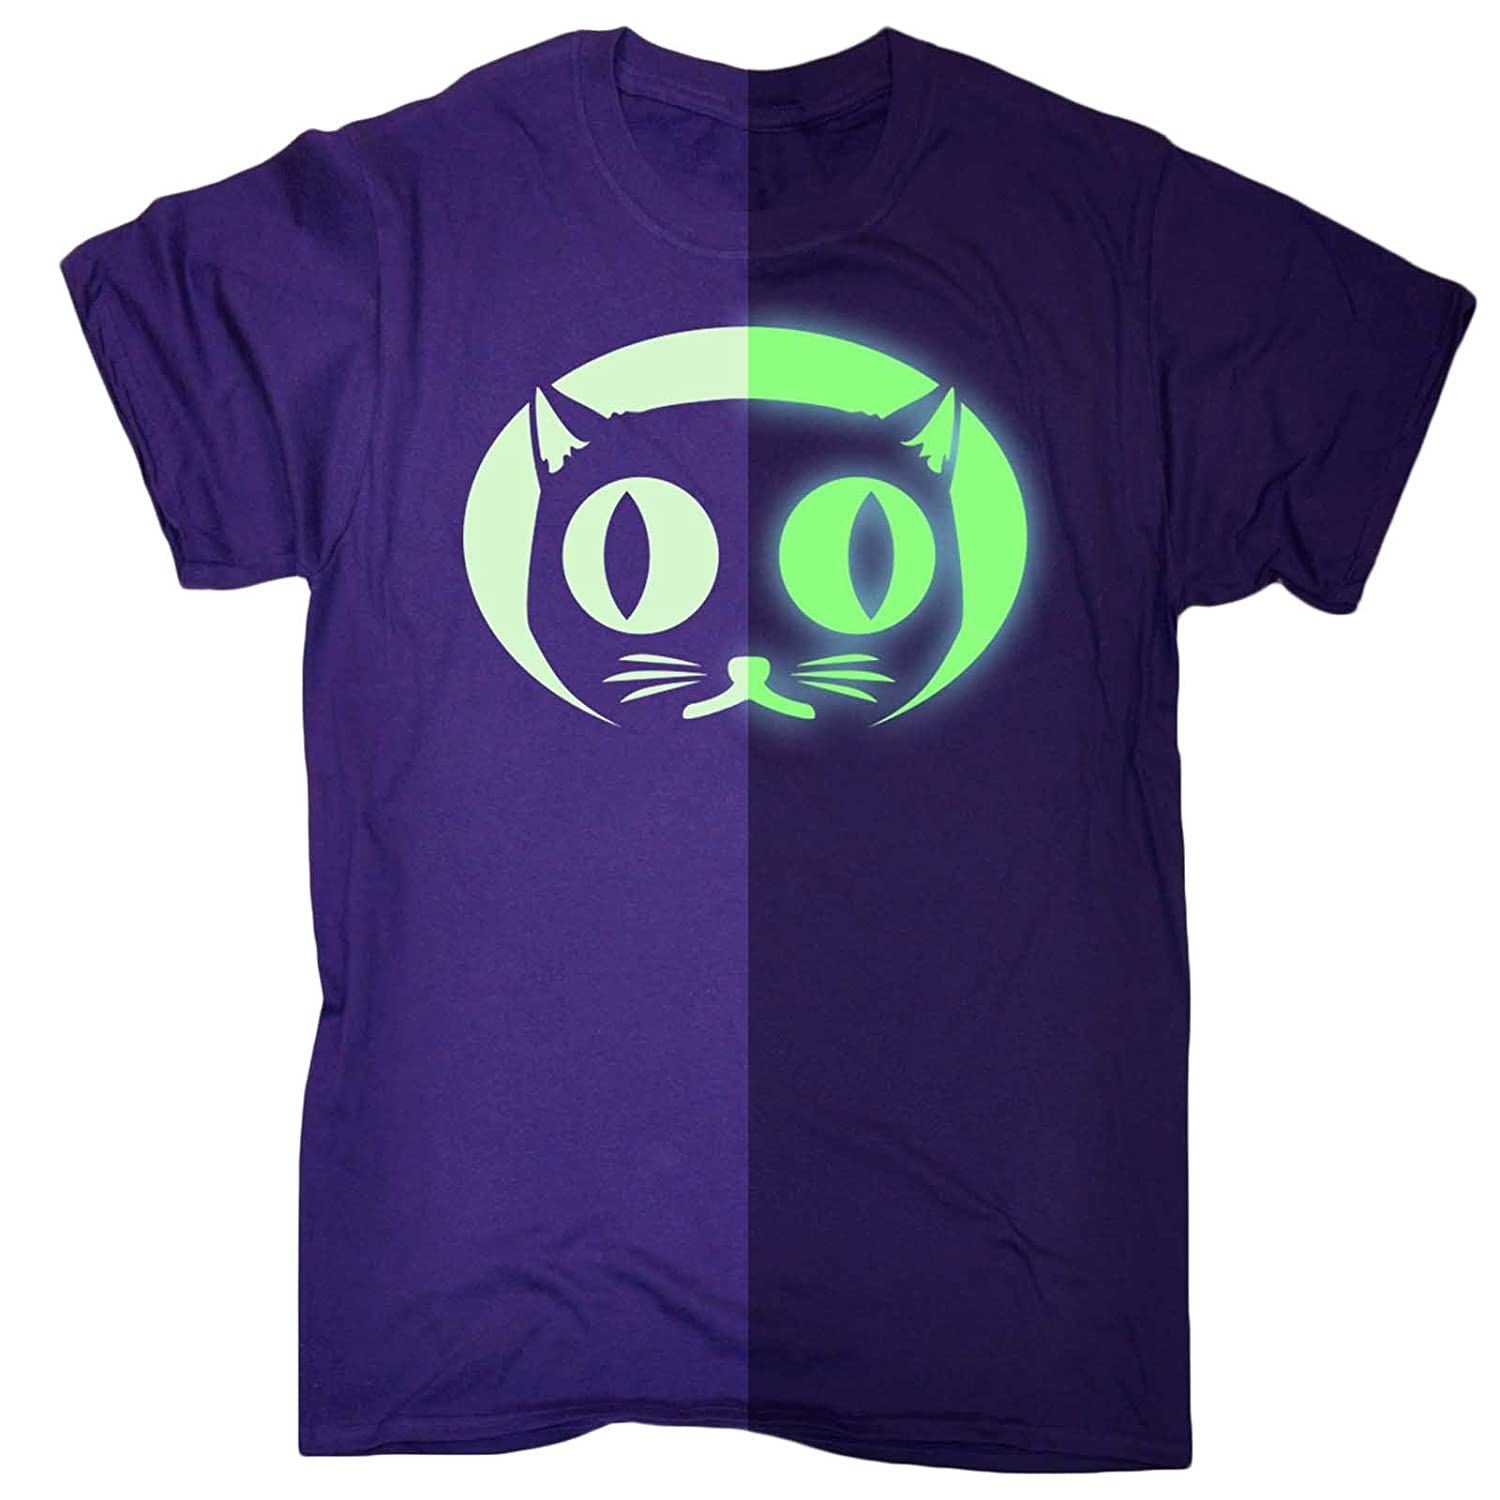 5cbd71f8 Funny Mens Glow in The Dark Cat Face T-Shirt Birthday Novelty Present  Clothing: Amazon.co.uk: Clothing